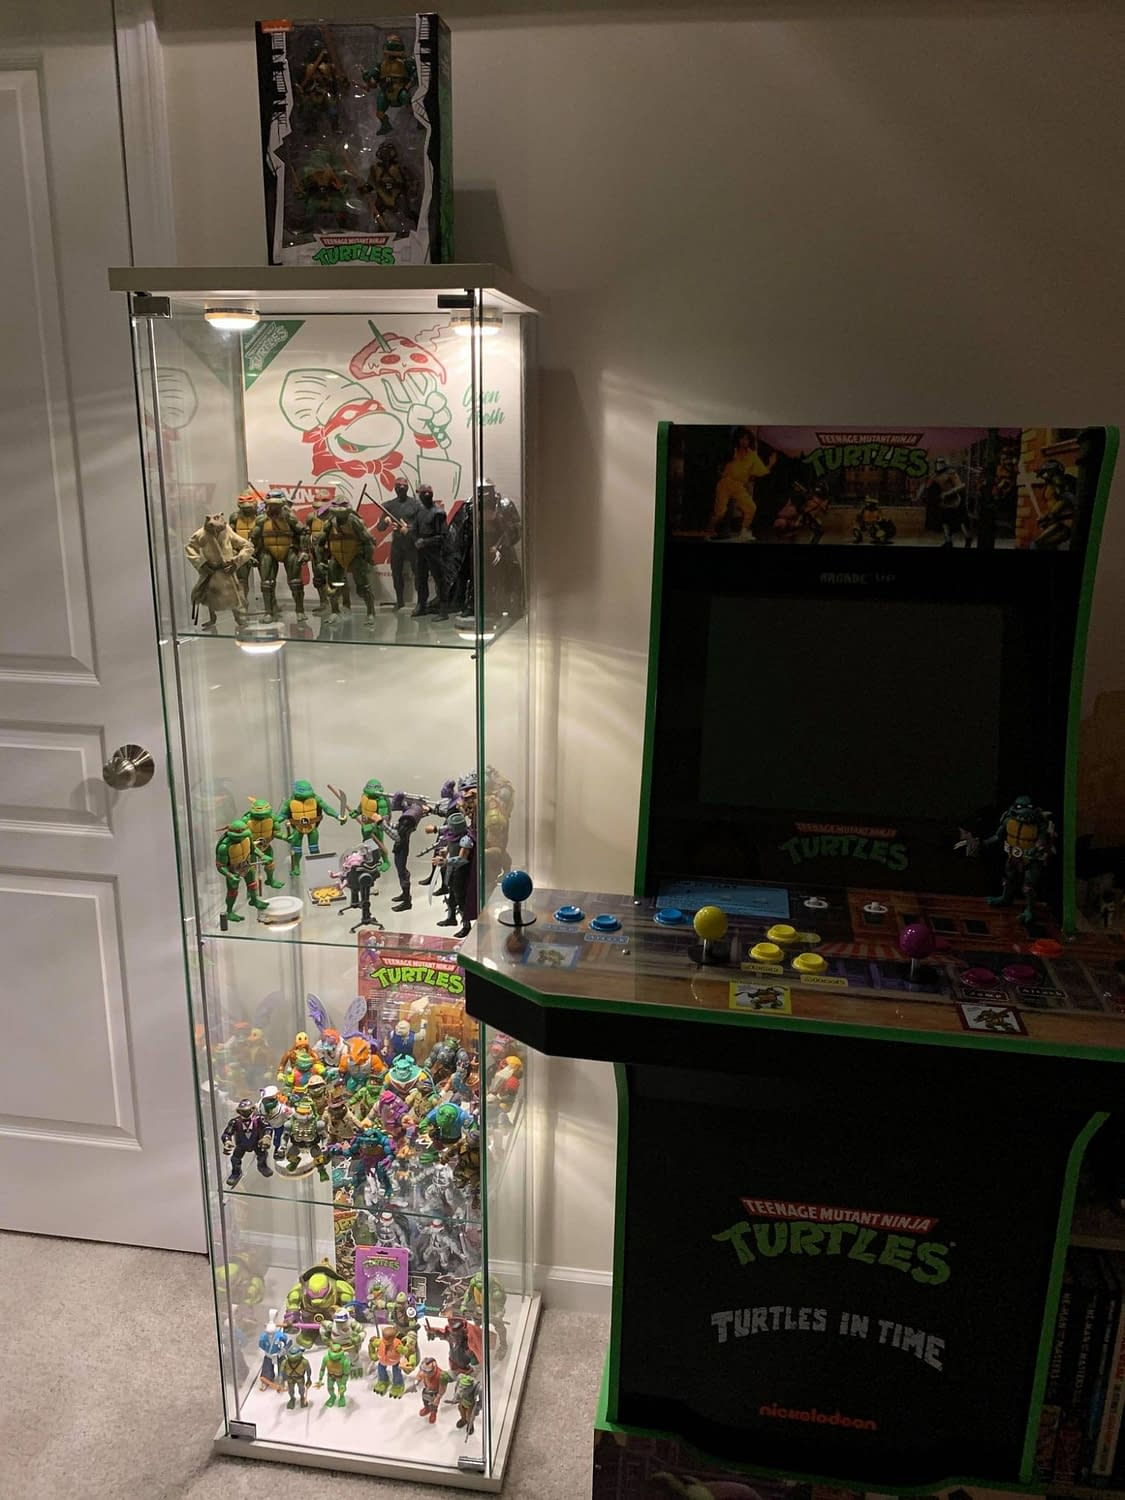 Toys Collectors: How Do You Display Your Collections?